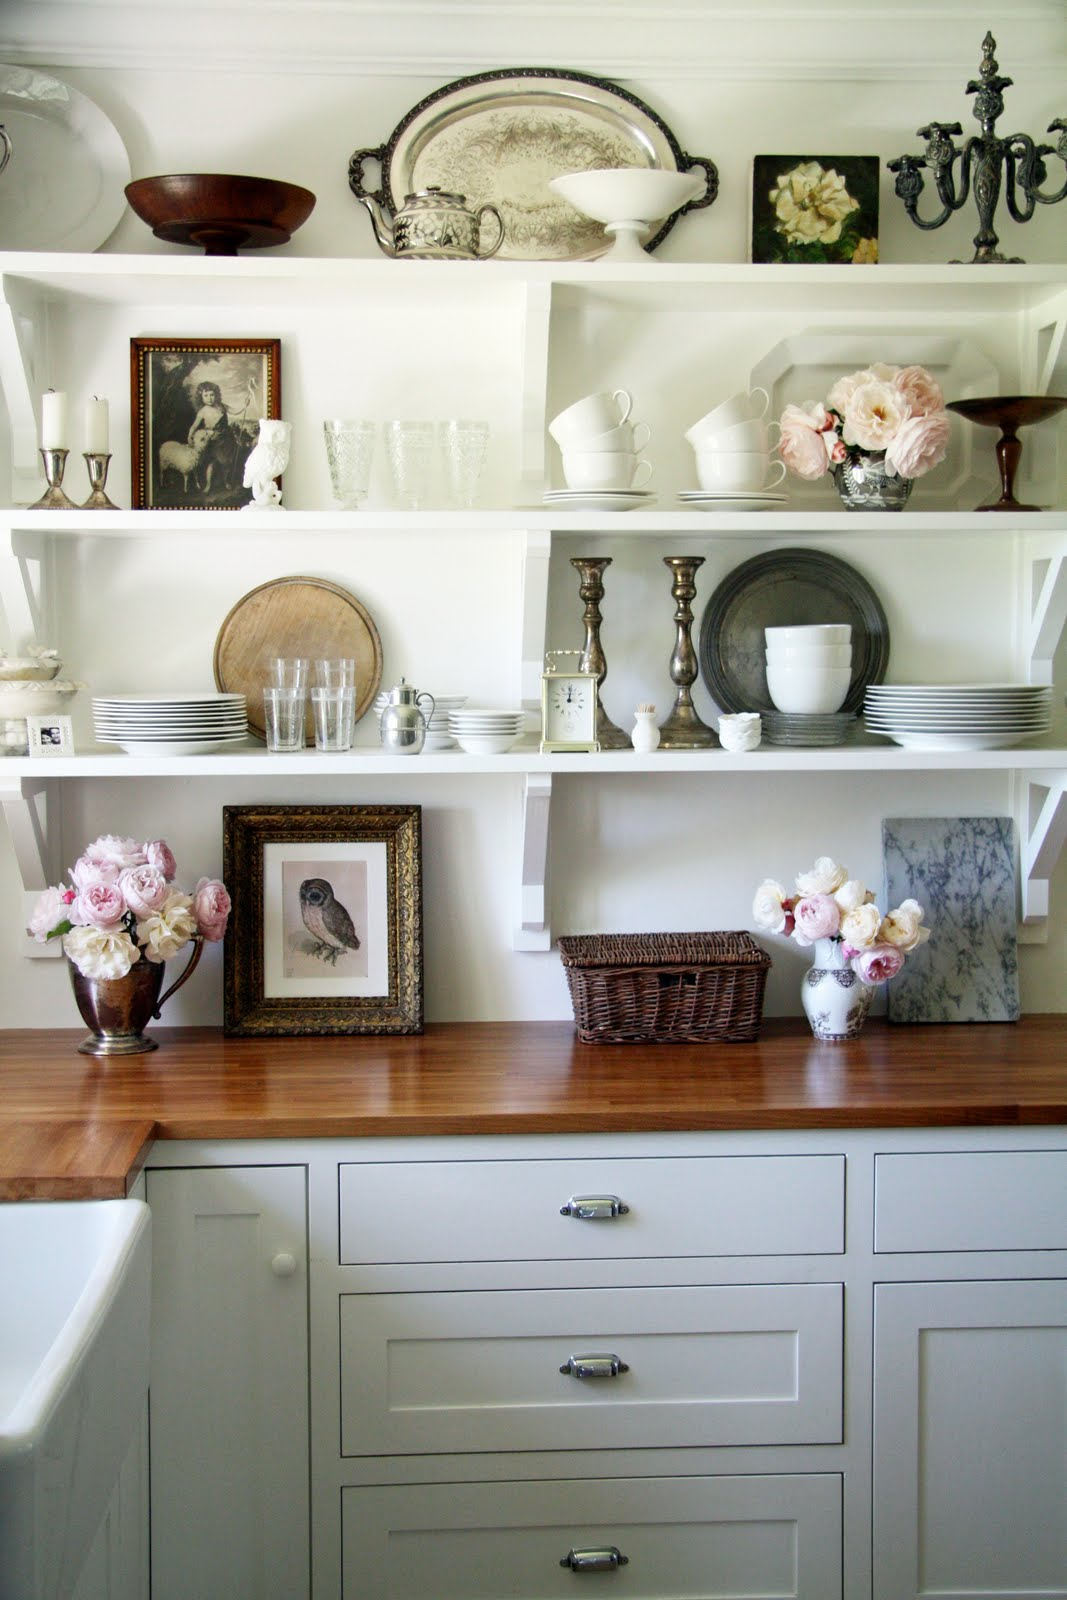 Kitchen Shelves Decorating Kitchen Planning And Design Open Shelves In Your Kitchen